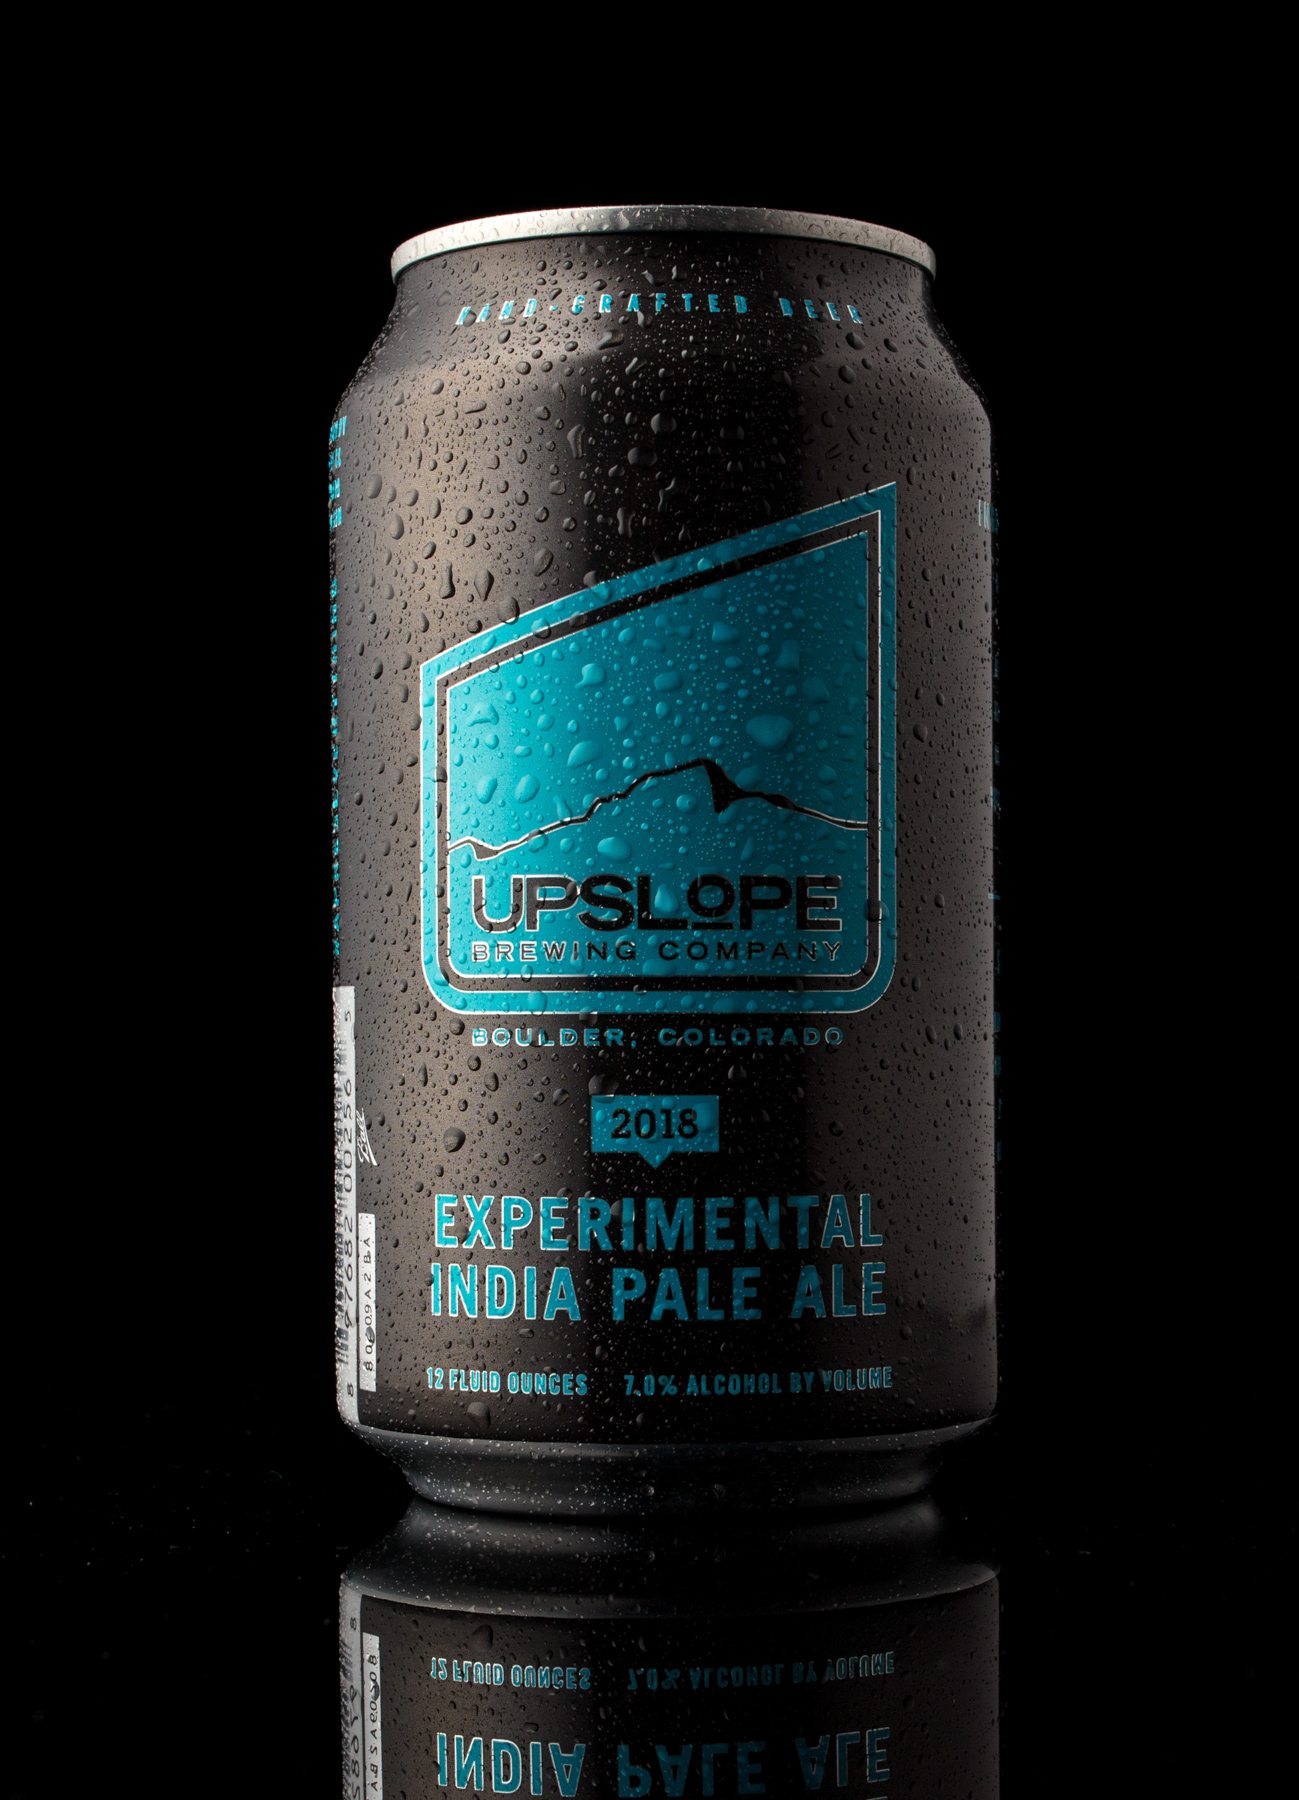 Uplsope brewing IPA craft beer can with condensation product photo on black background.